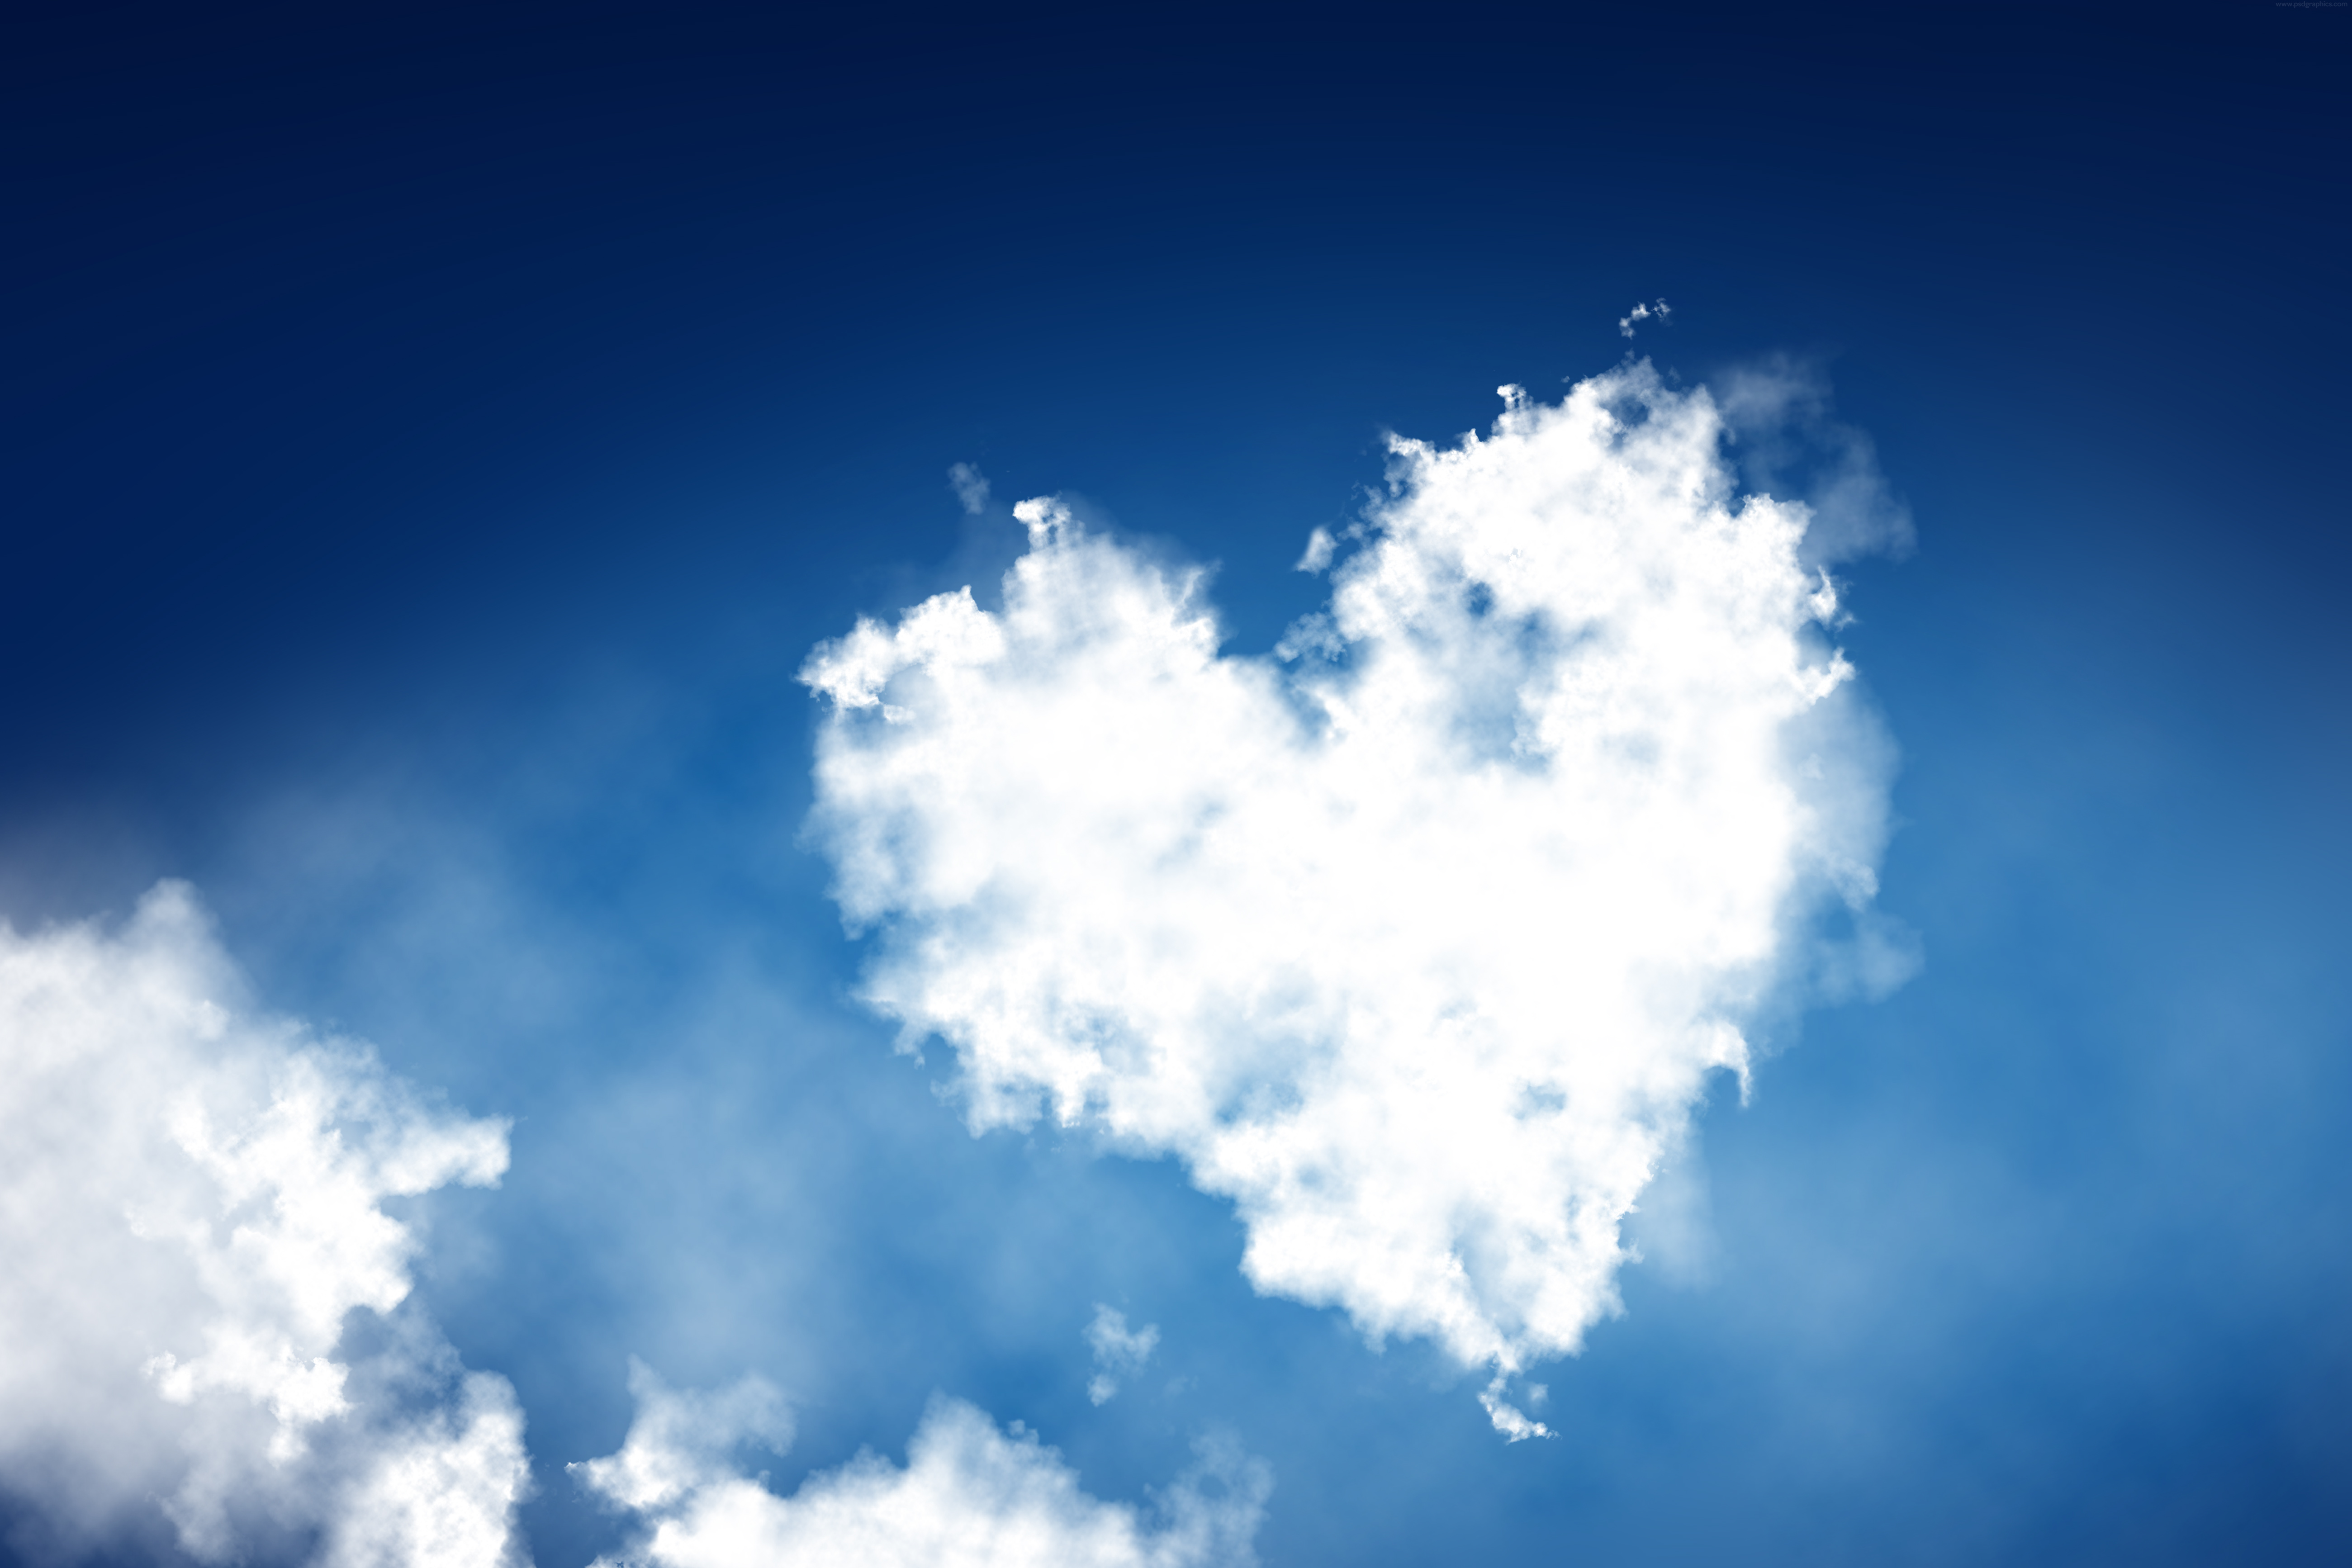 heart shaped clouds background psdgraphics